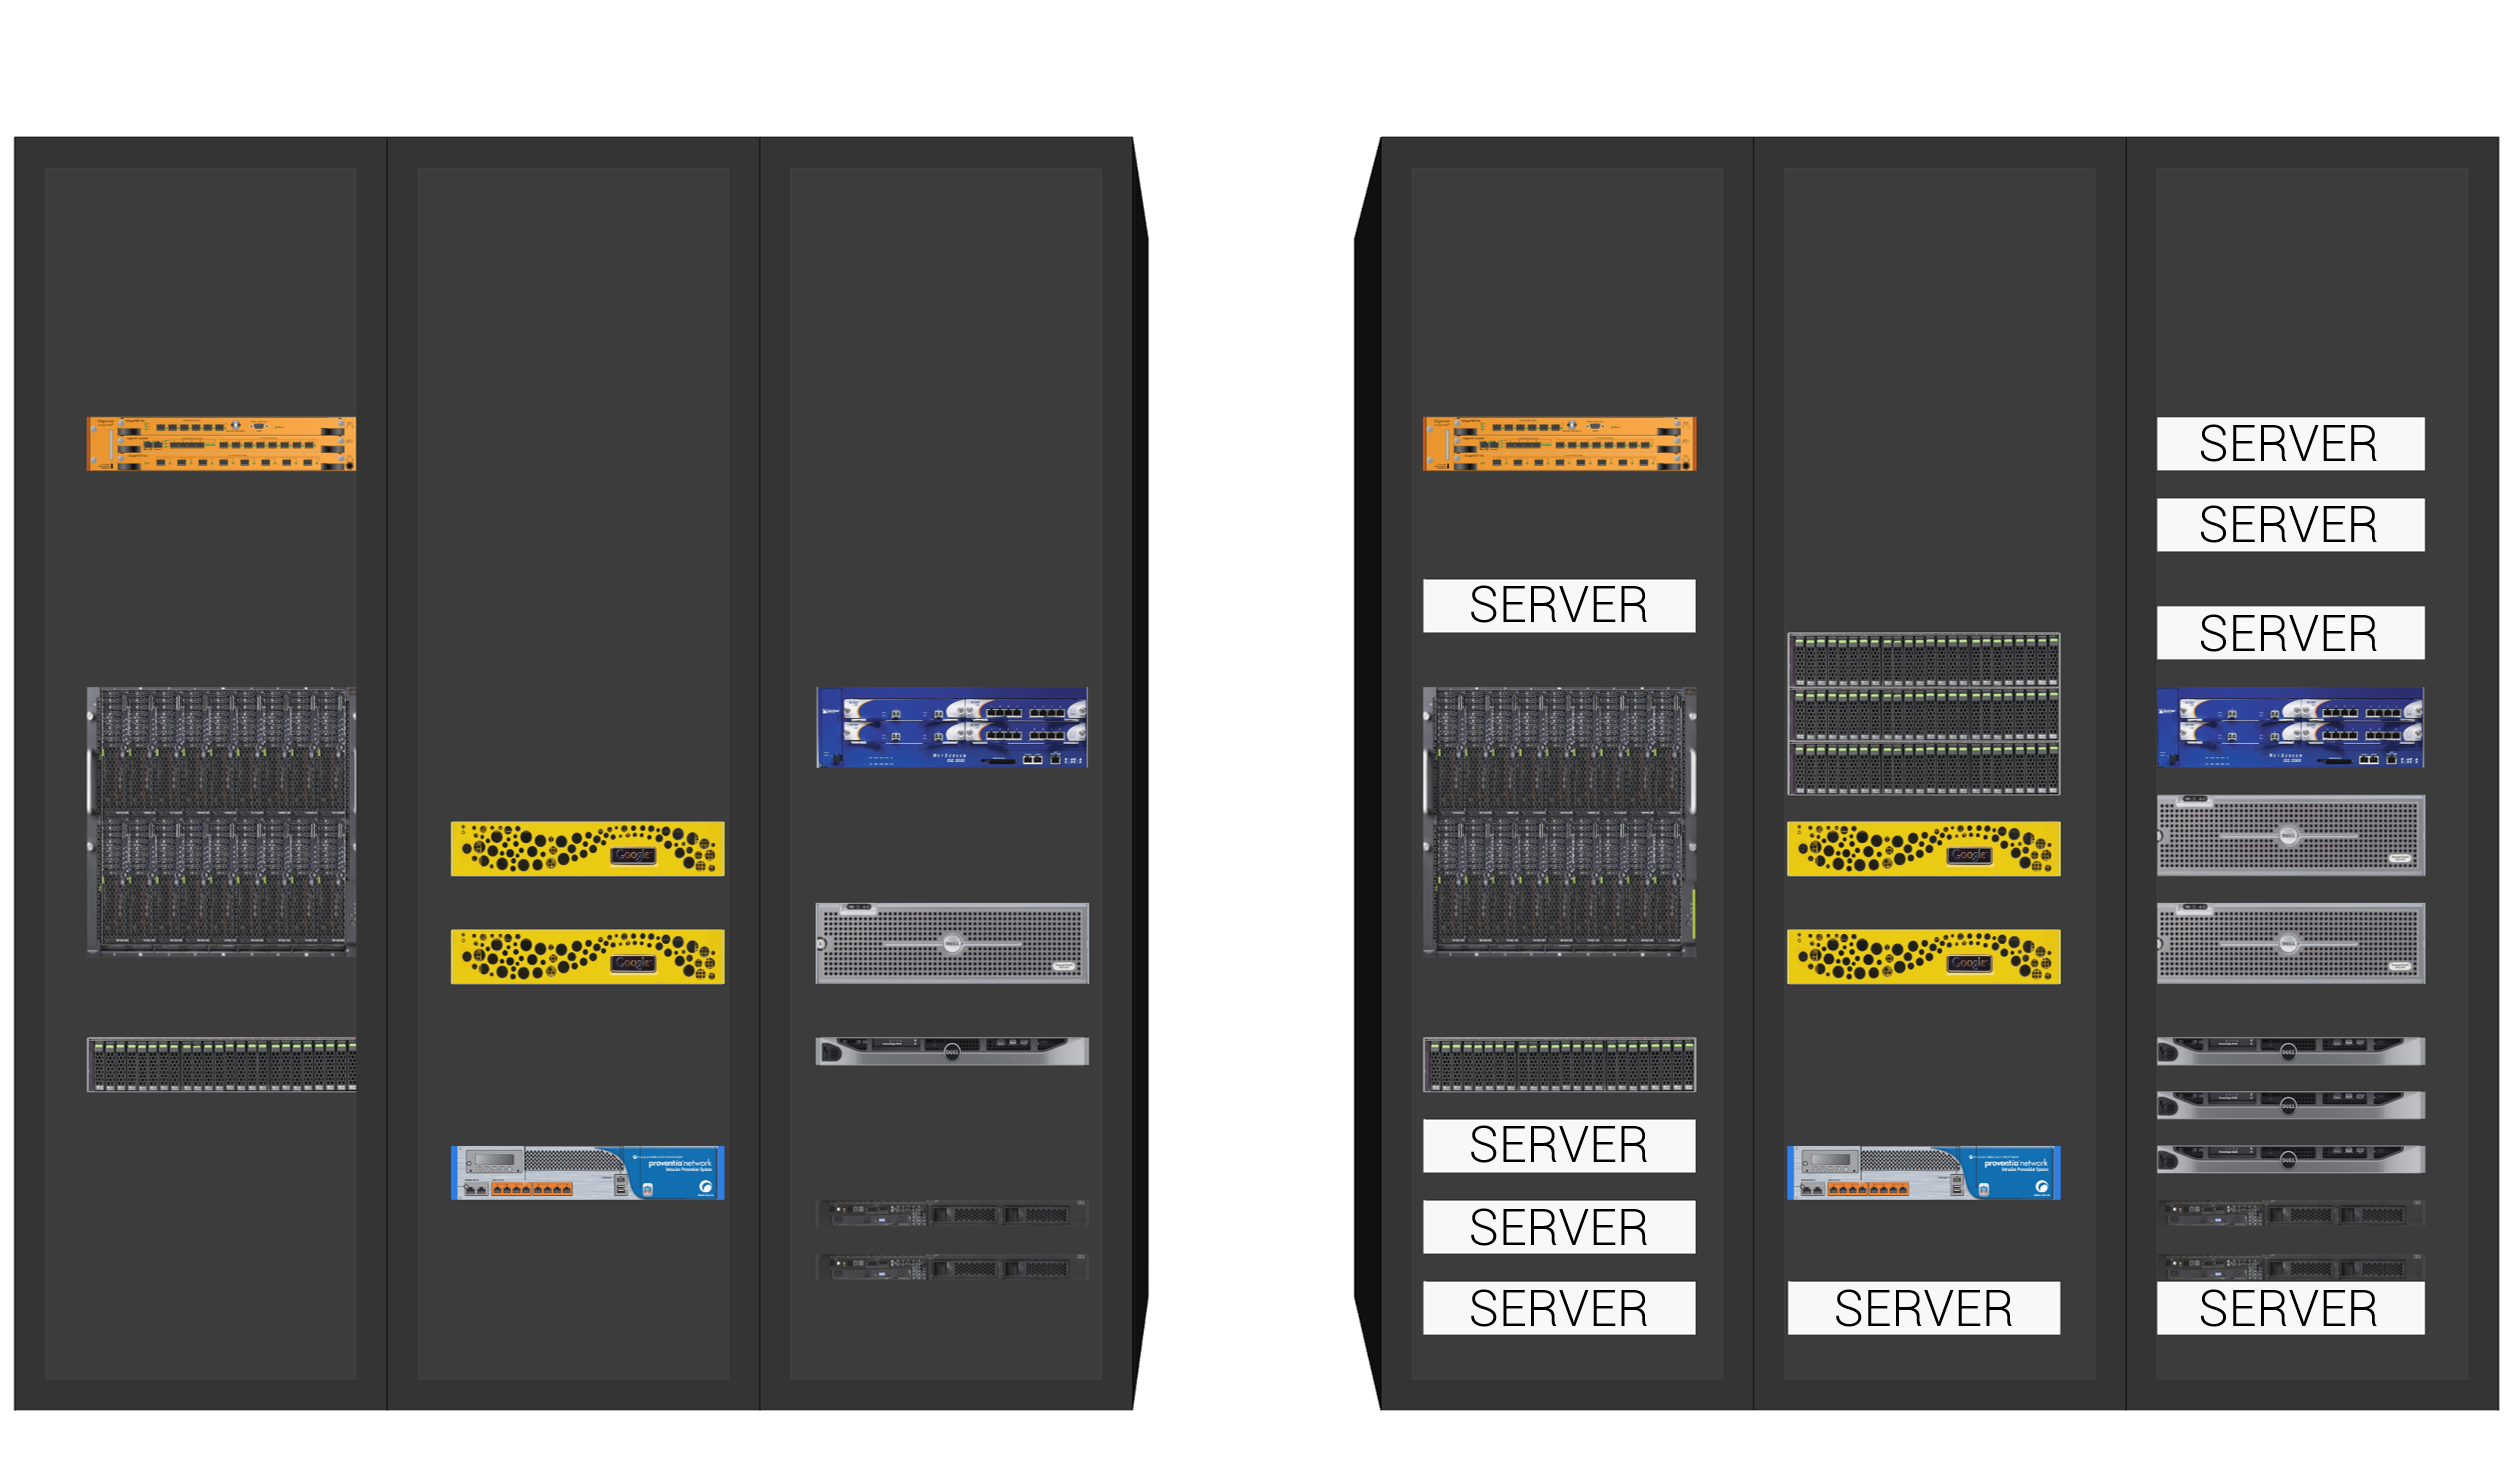 In this example, the partially-loaded racks in the model (left) are filled with additional vendor-specific equipment models and generic conceptual servers (shown in white), to reach the racks' design capacities (right).